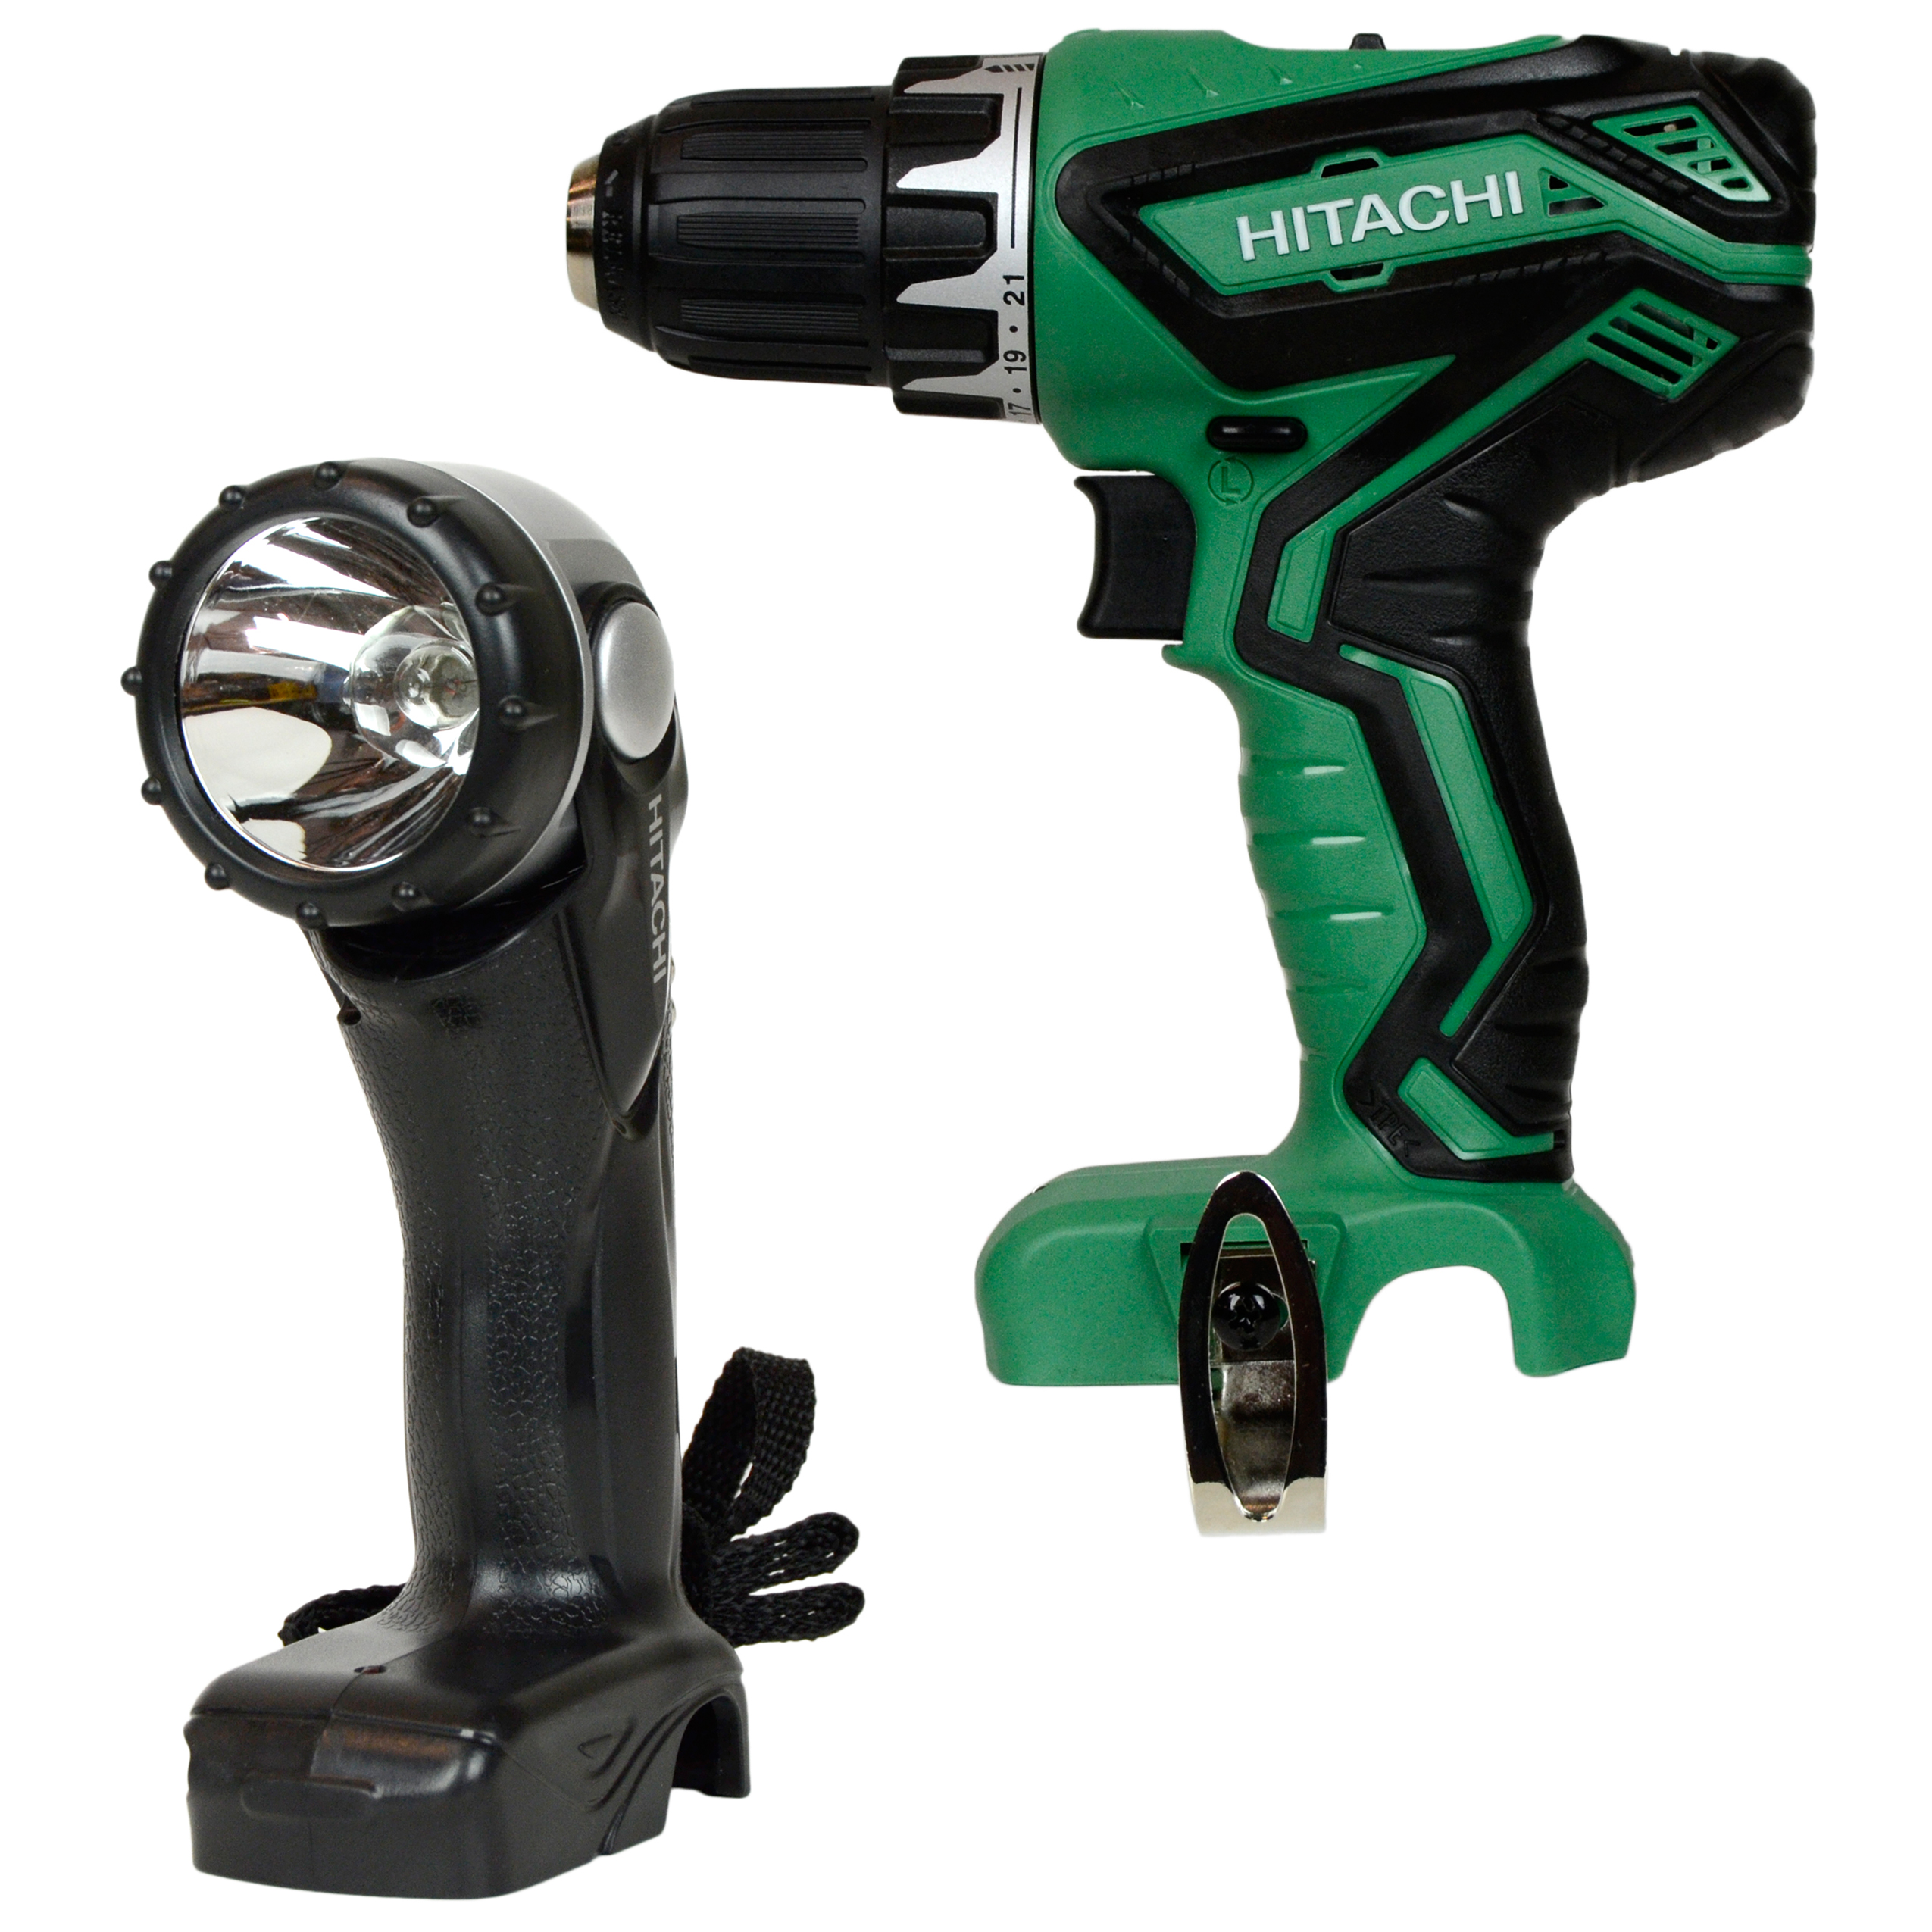 "Hitachi Power Tools DS10DFL2 12V Lithium-Ion 3/8"" Cordless Drill Driver & One UB10DL 12V Peak Cordless Flashlight"